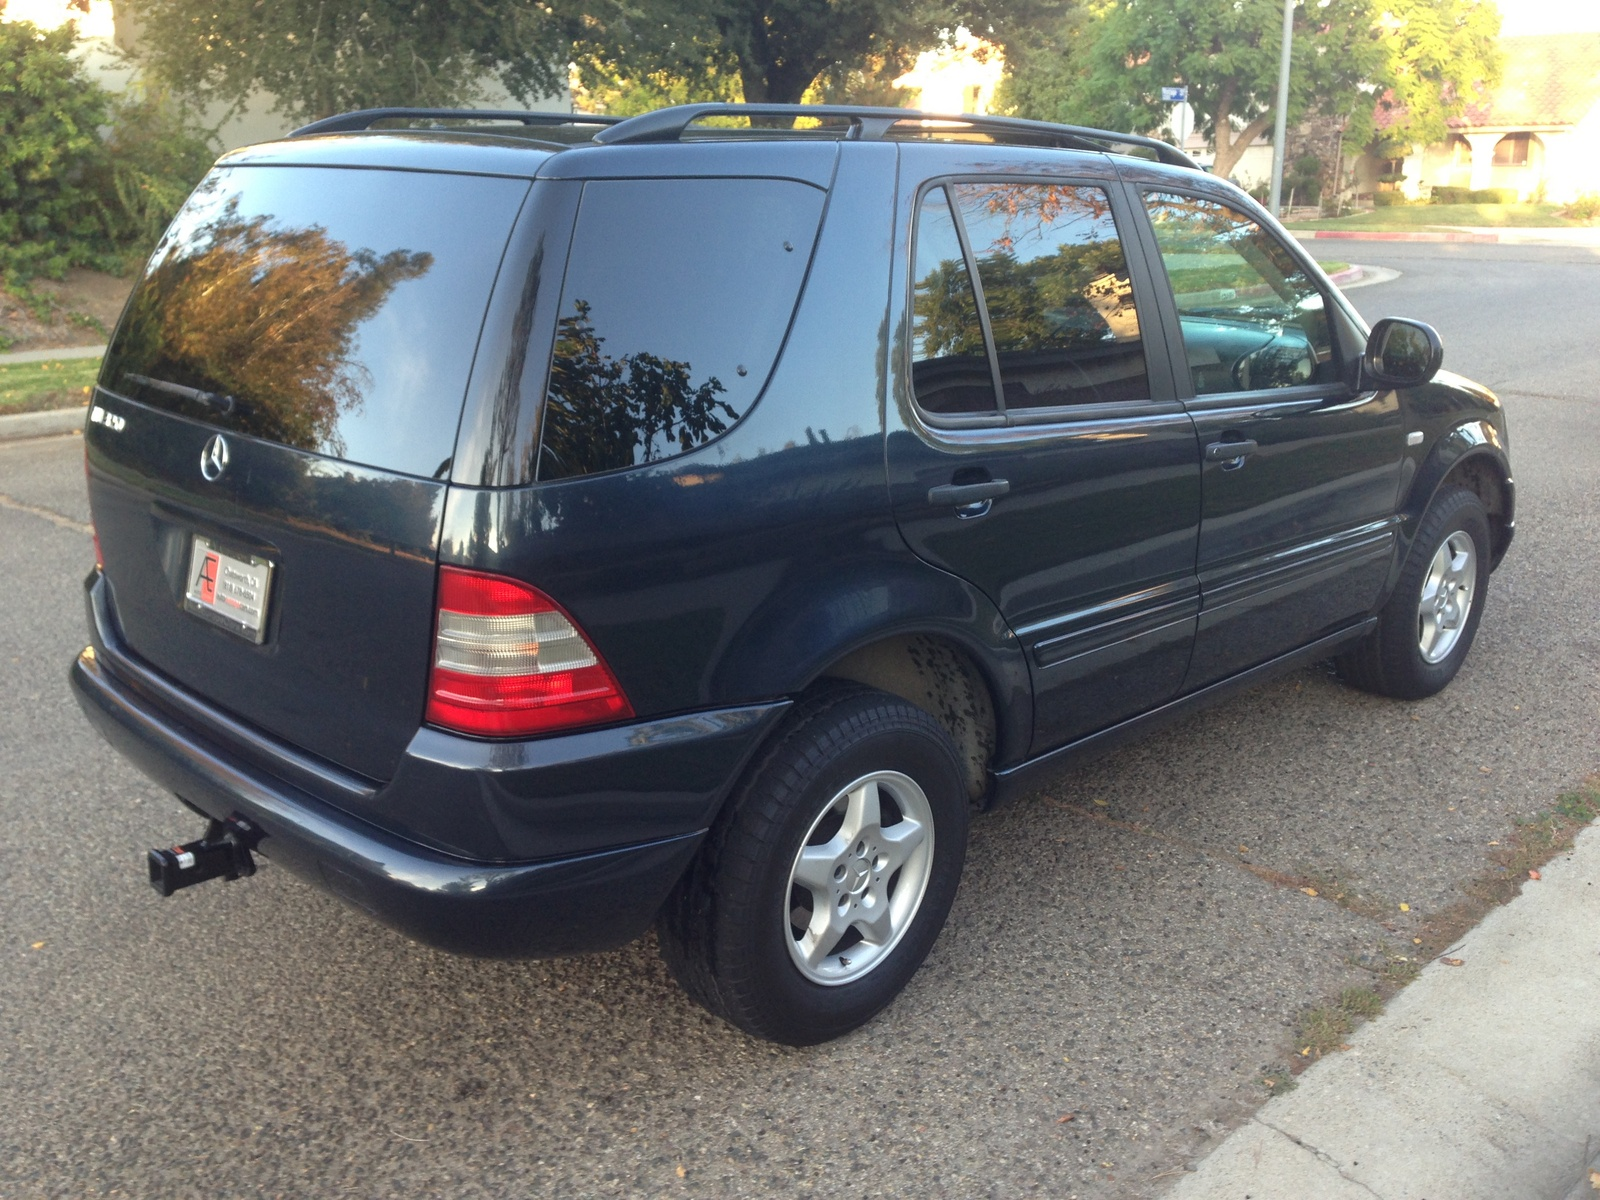 2000 mercedes benz m class exterior pictures cargurus for Mercedes benz ml320 suv